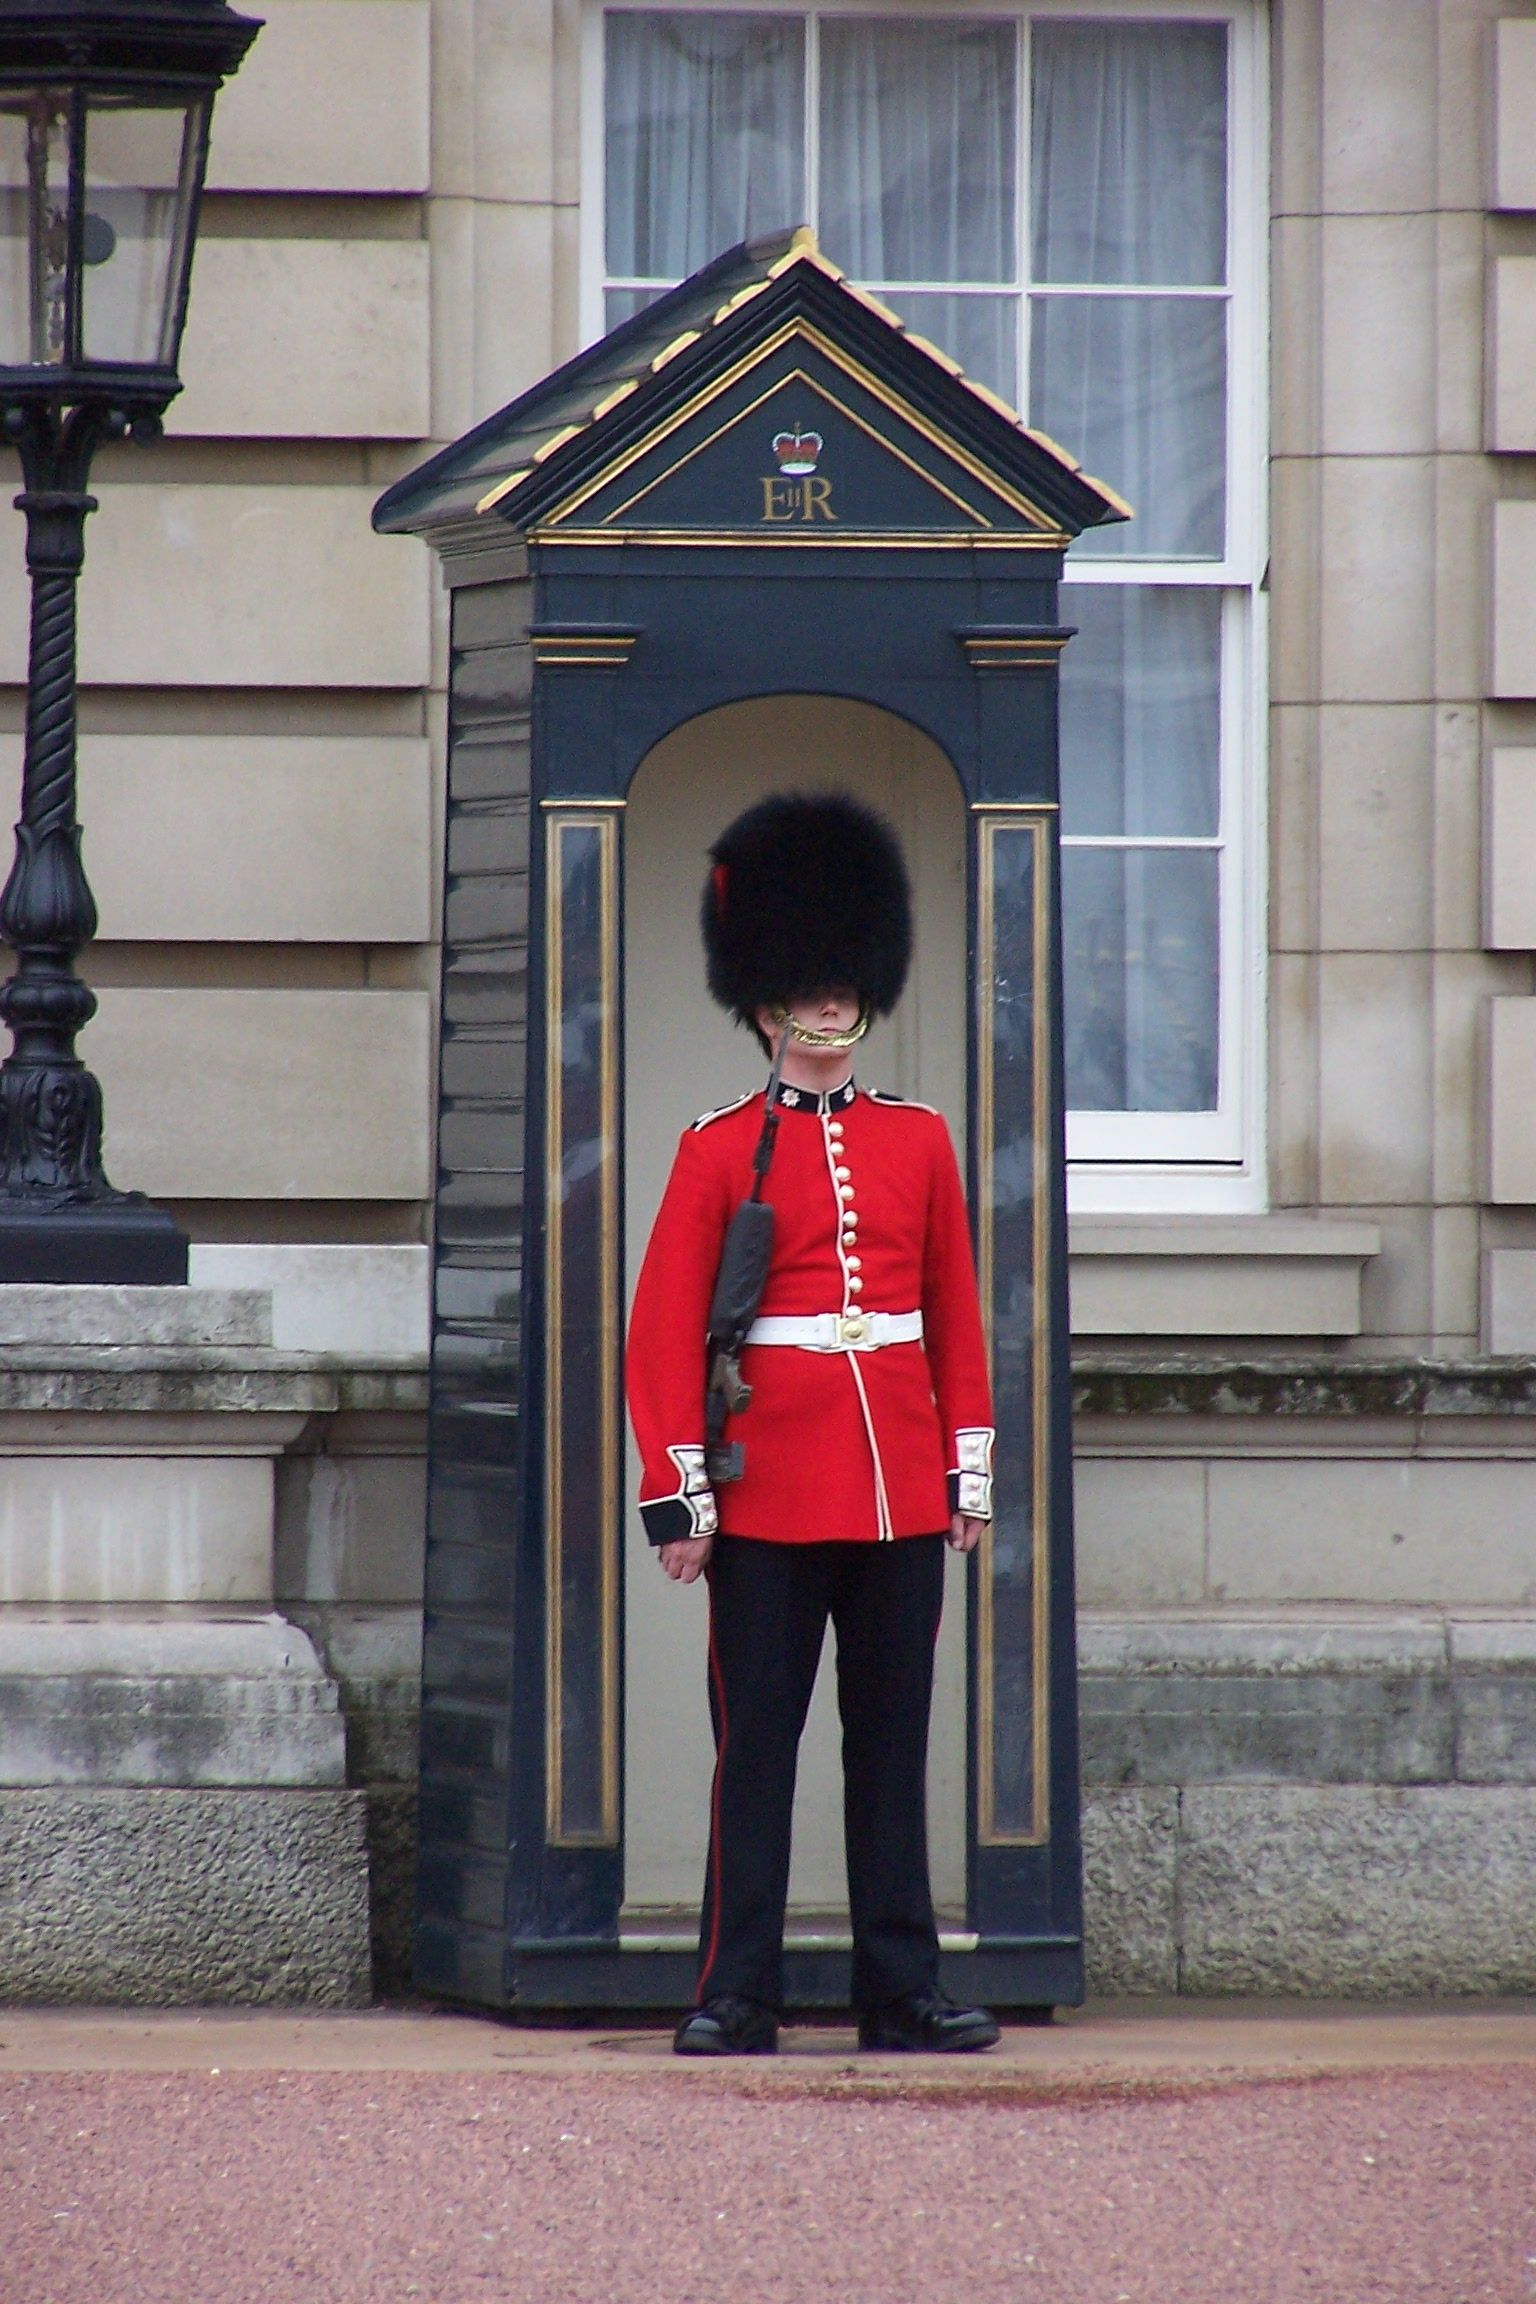 Take a Picture with a Royal Guard in London Britain